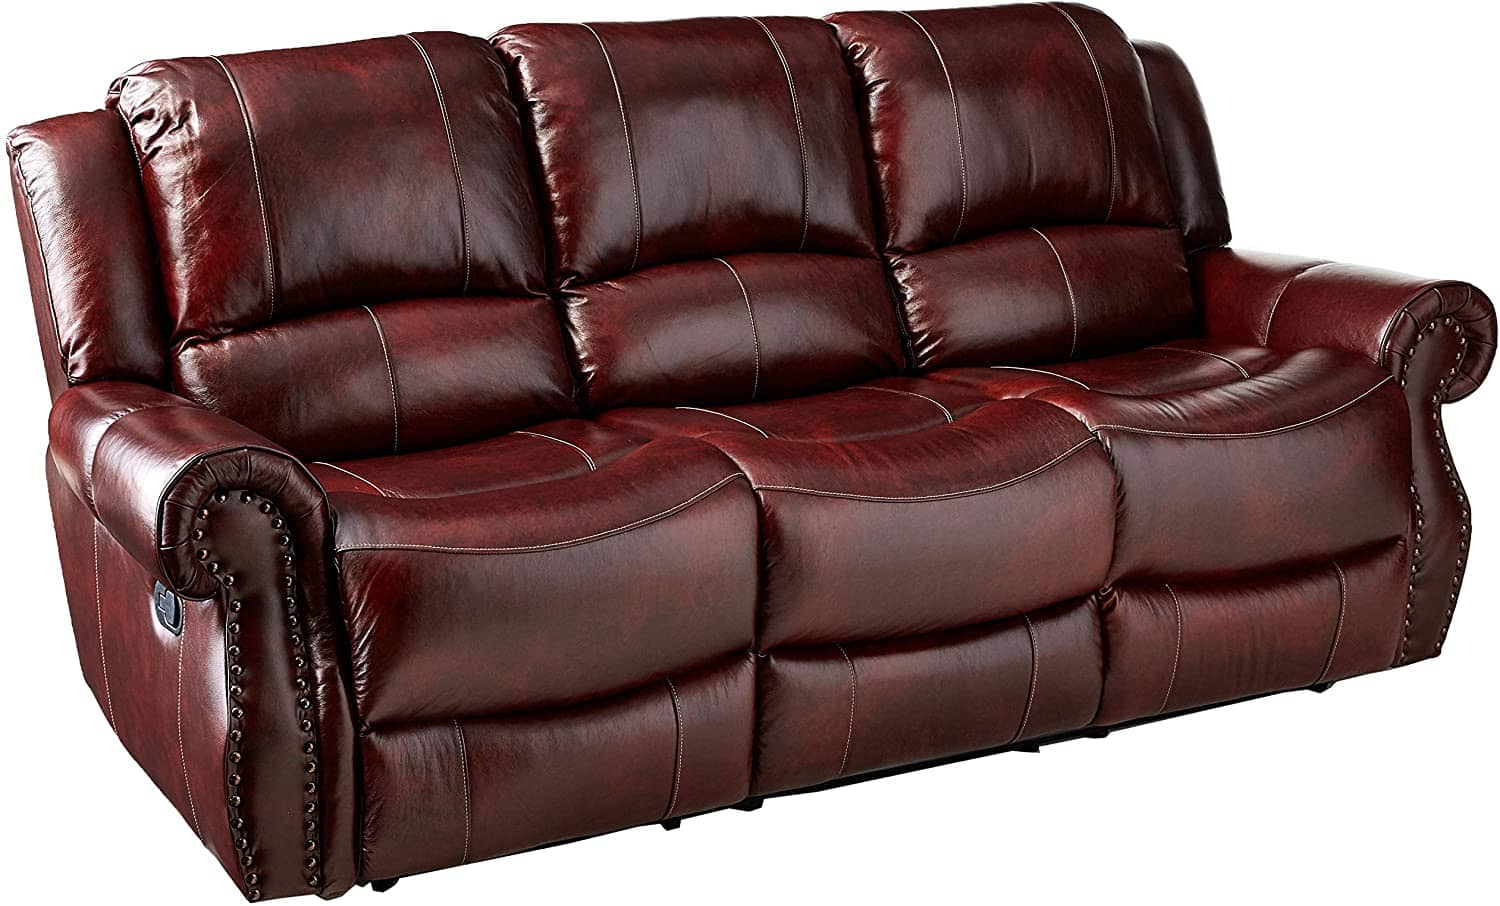 Cambridge Telluride Leather Double Reclining Sofa - Best for tall people